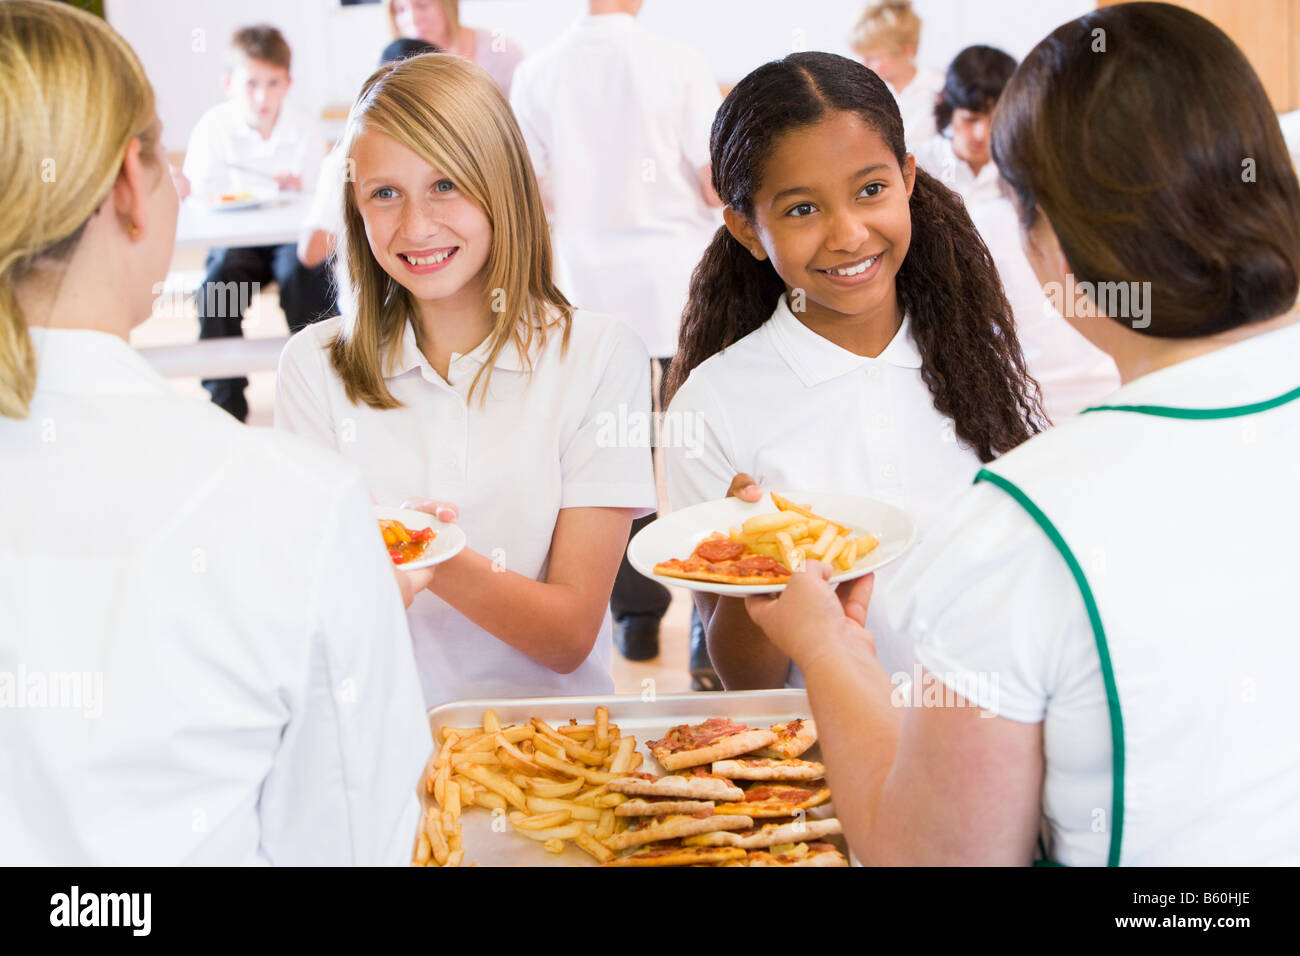 Students in cafeteria line being served by lunch ladies - Stock Image